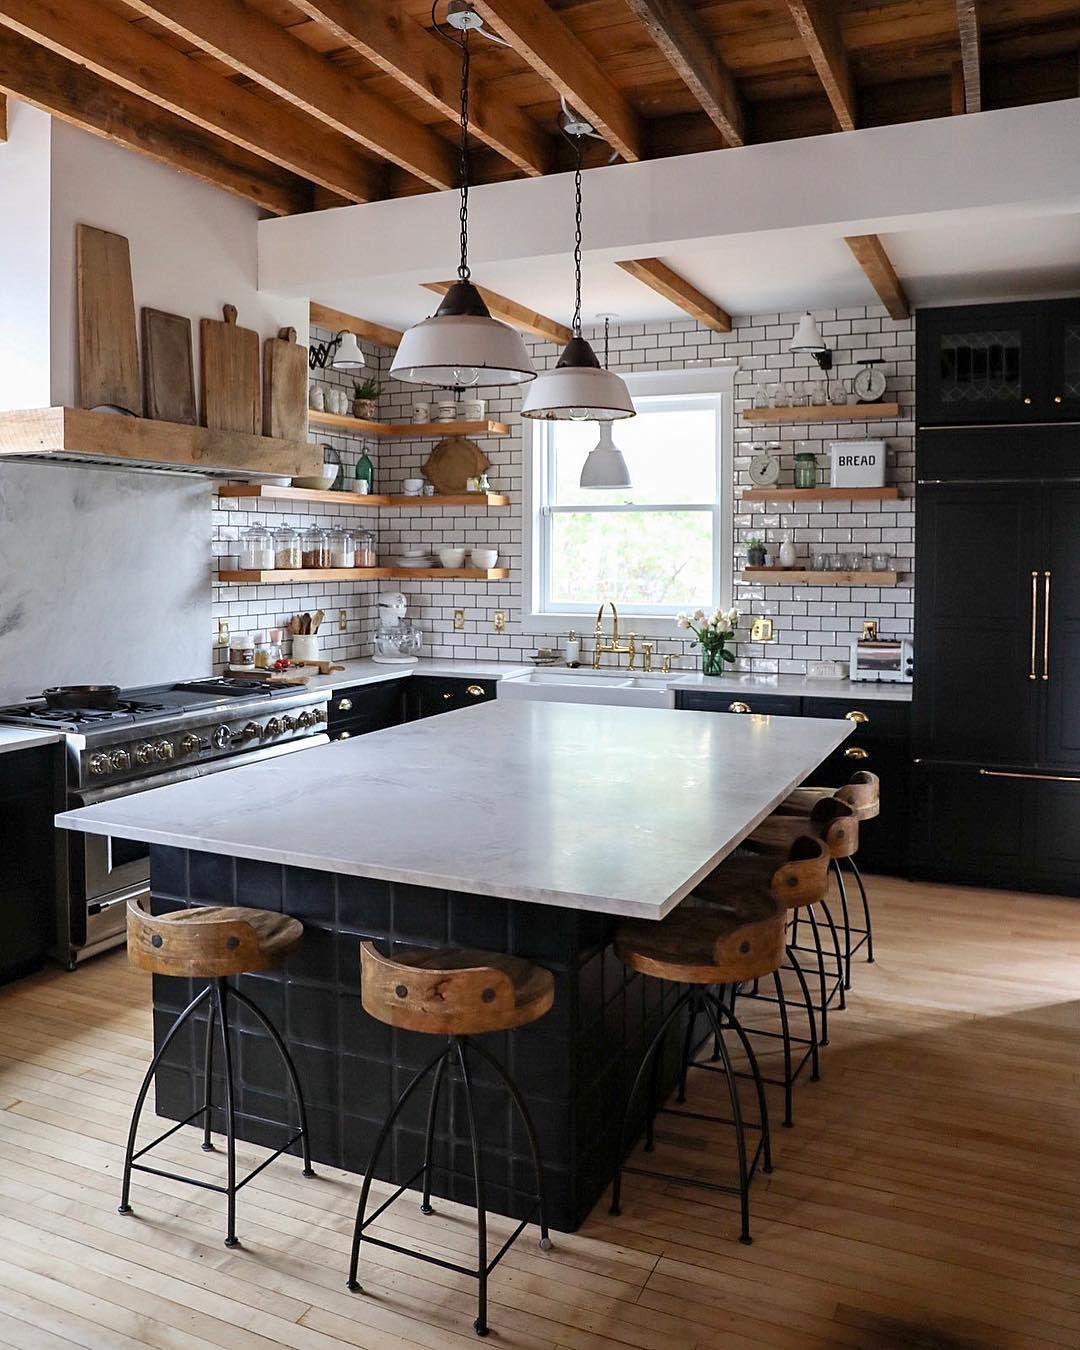 Lucy Rose On Instagram Good Morning Enjoying This Mini Heat Wave Before The Snow Comes In Tomo Home Kitchens Kitchen Inspirations Kitchen Dining Room